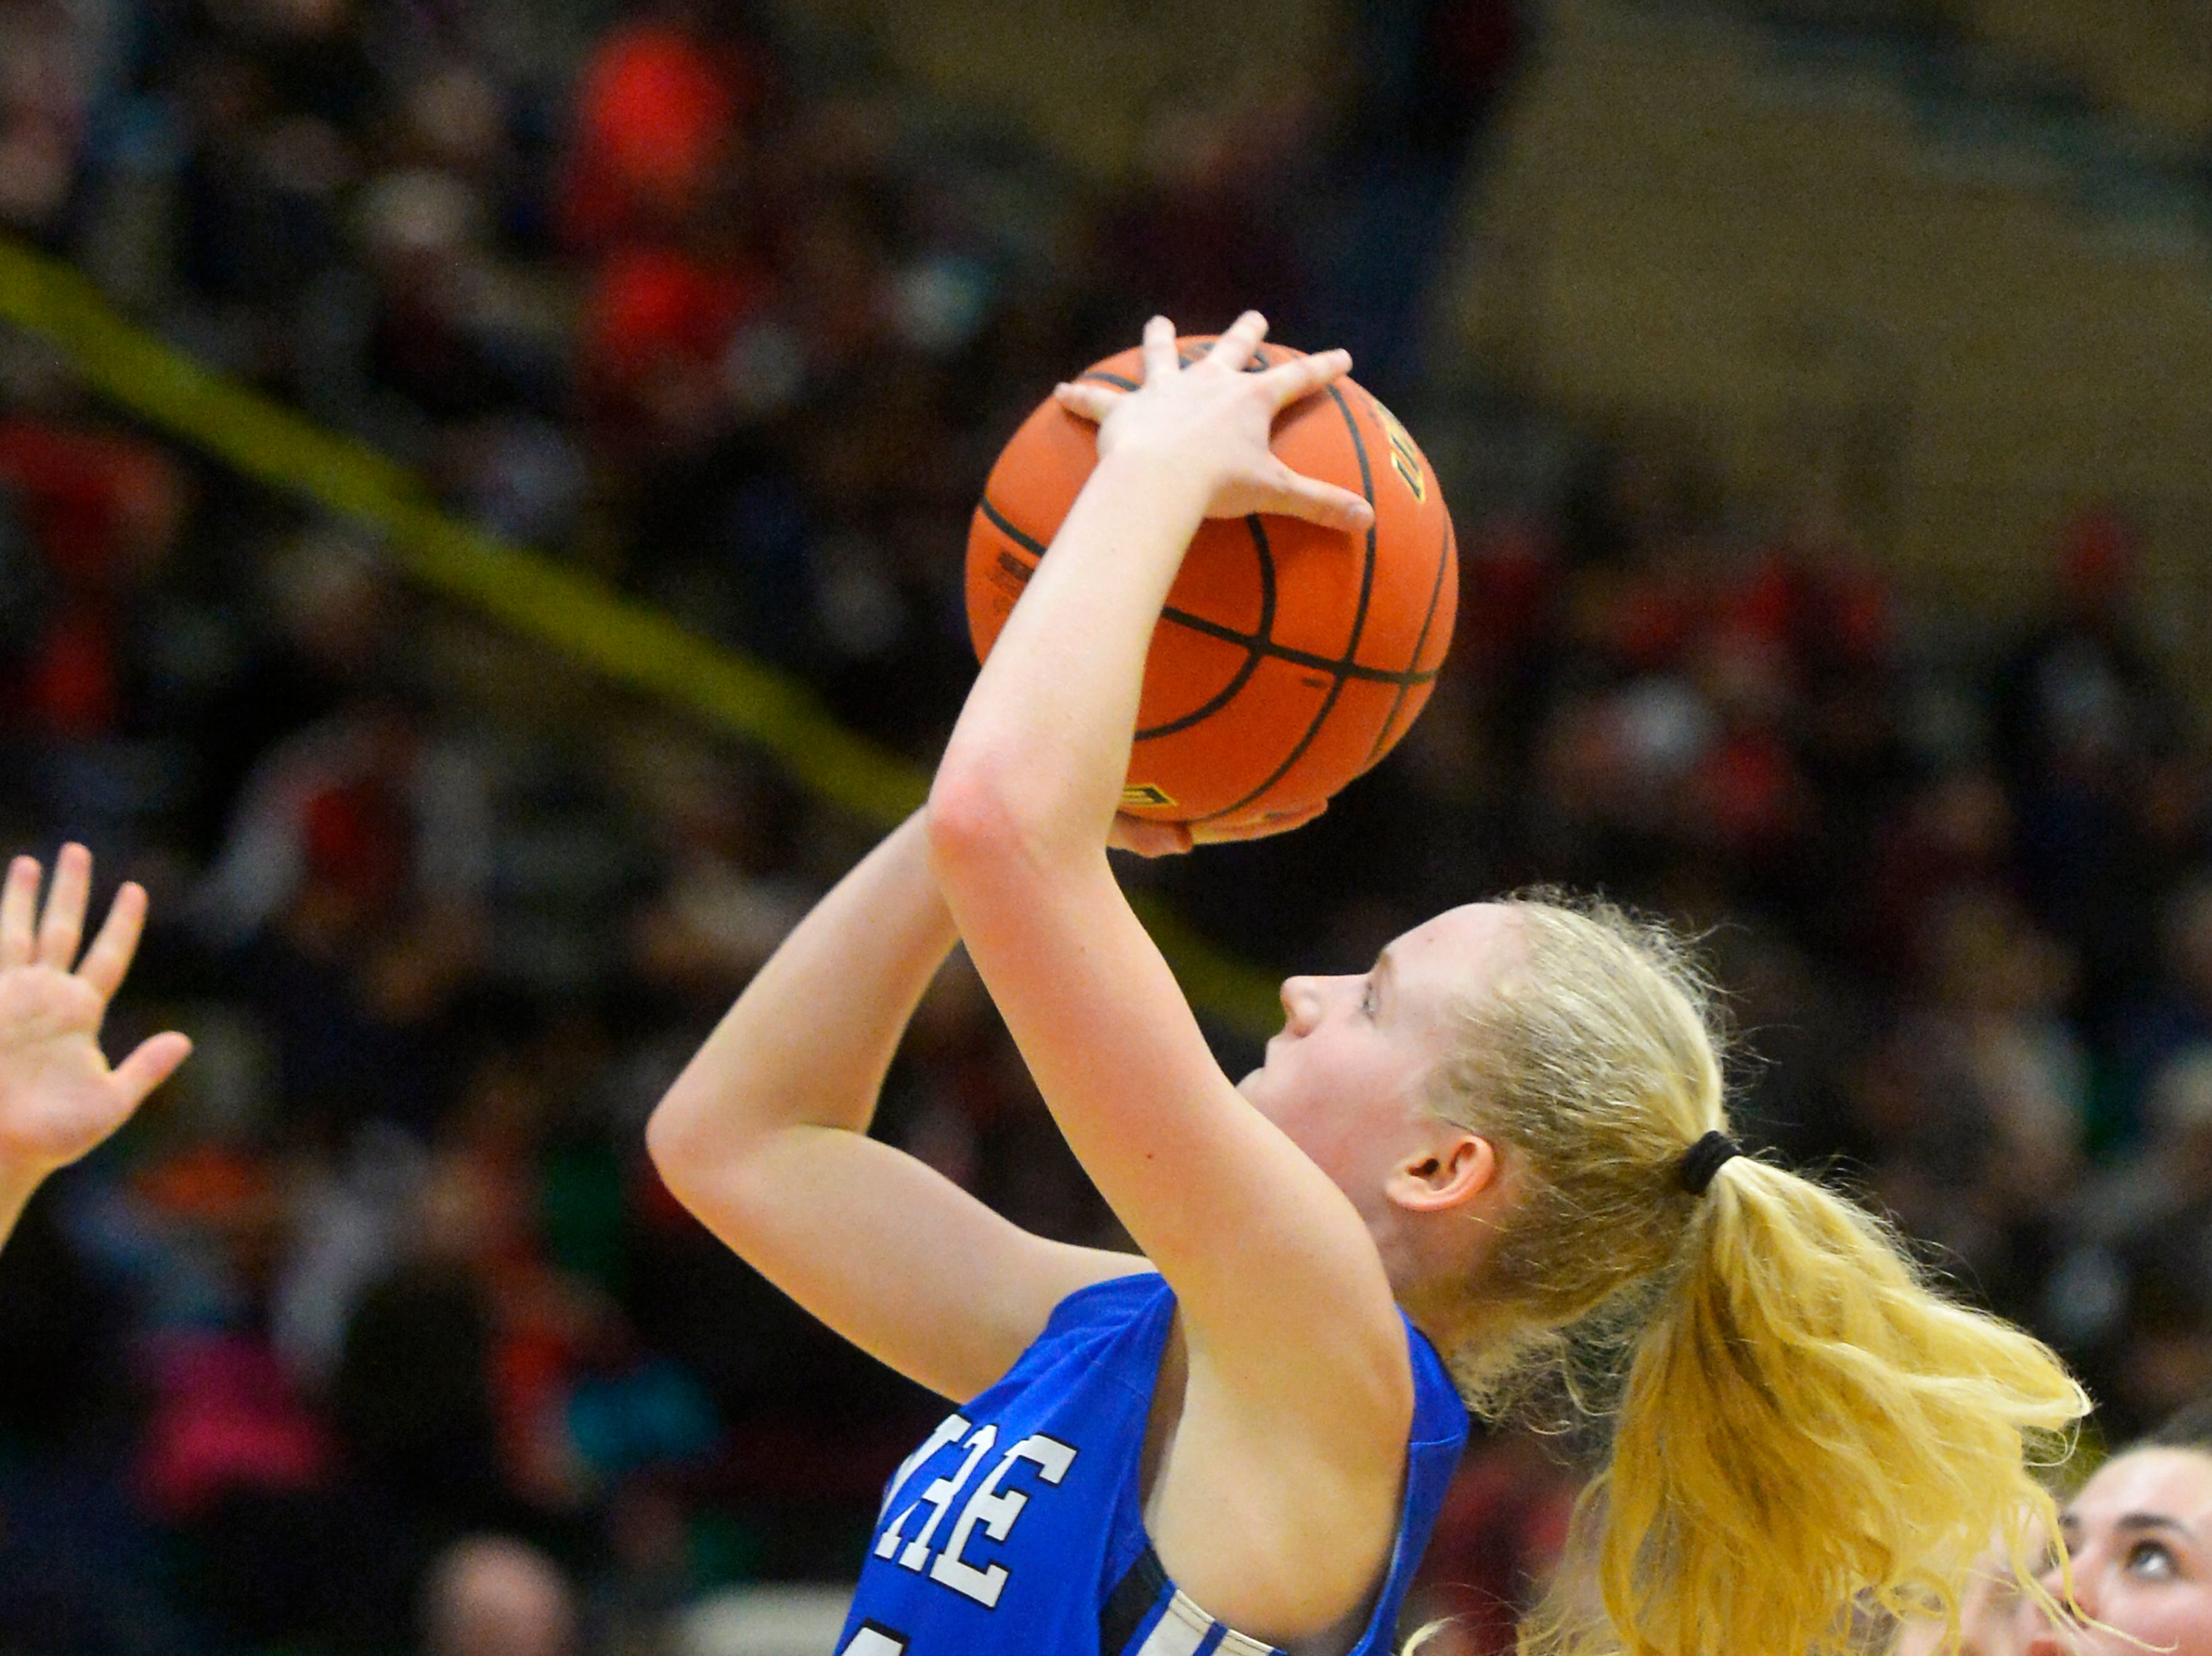 Havre's Sadie Filius scores in Thursday's game against Libby during the Class A State Basketball Tournament in the Four Seasons Arena, Thursday.